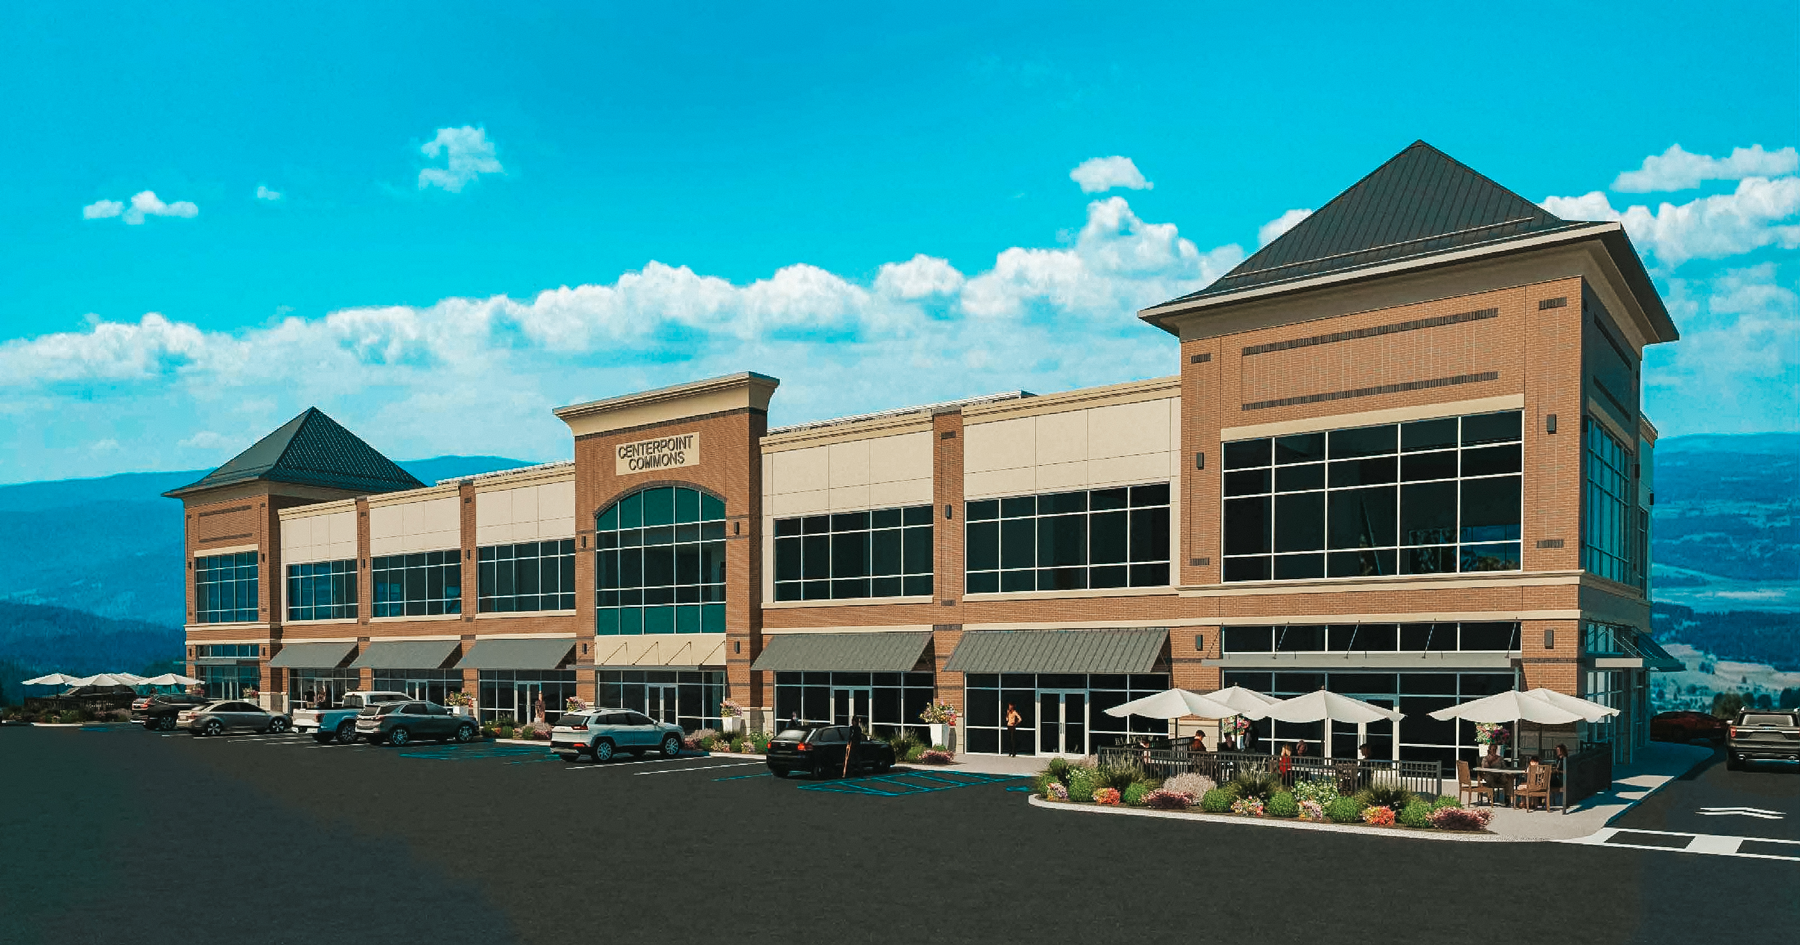 CenterPoint Commons Retail/Office Rendering